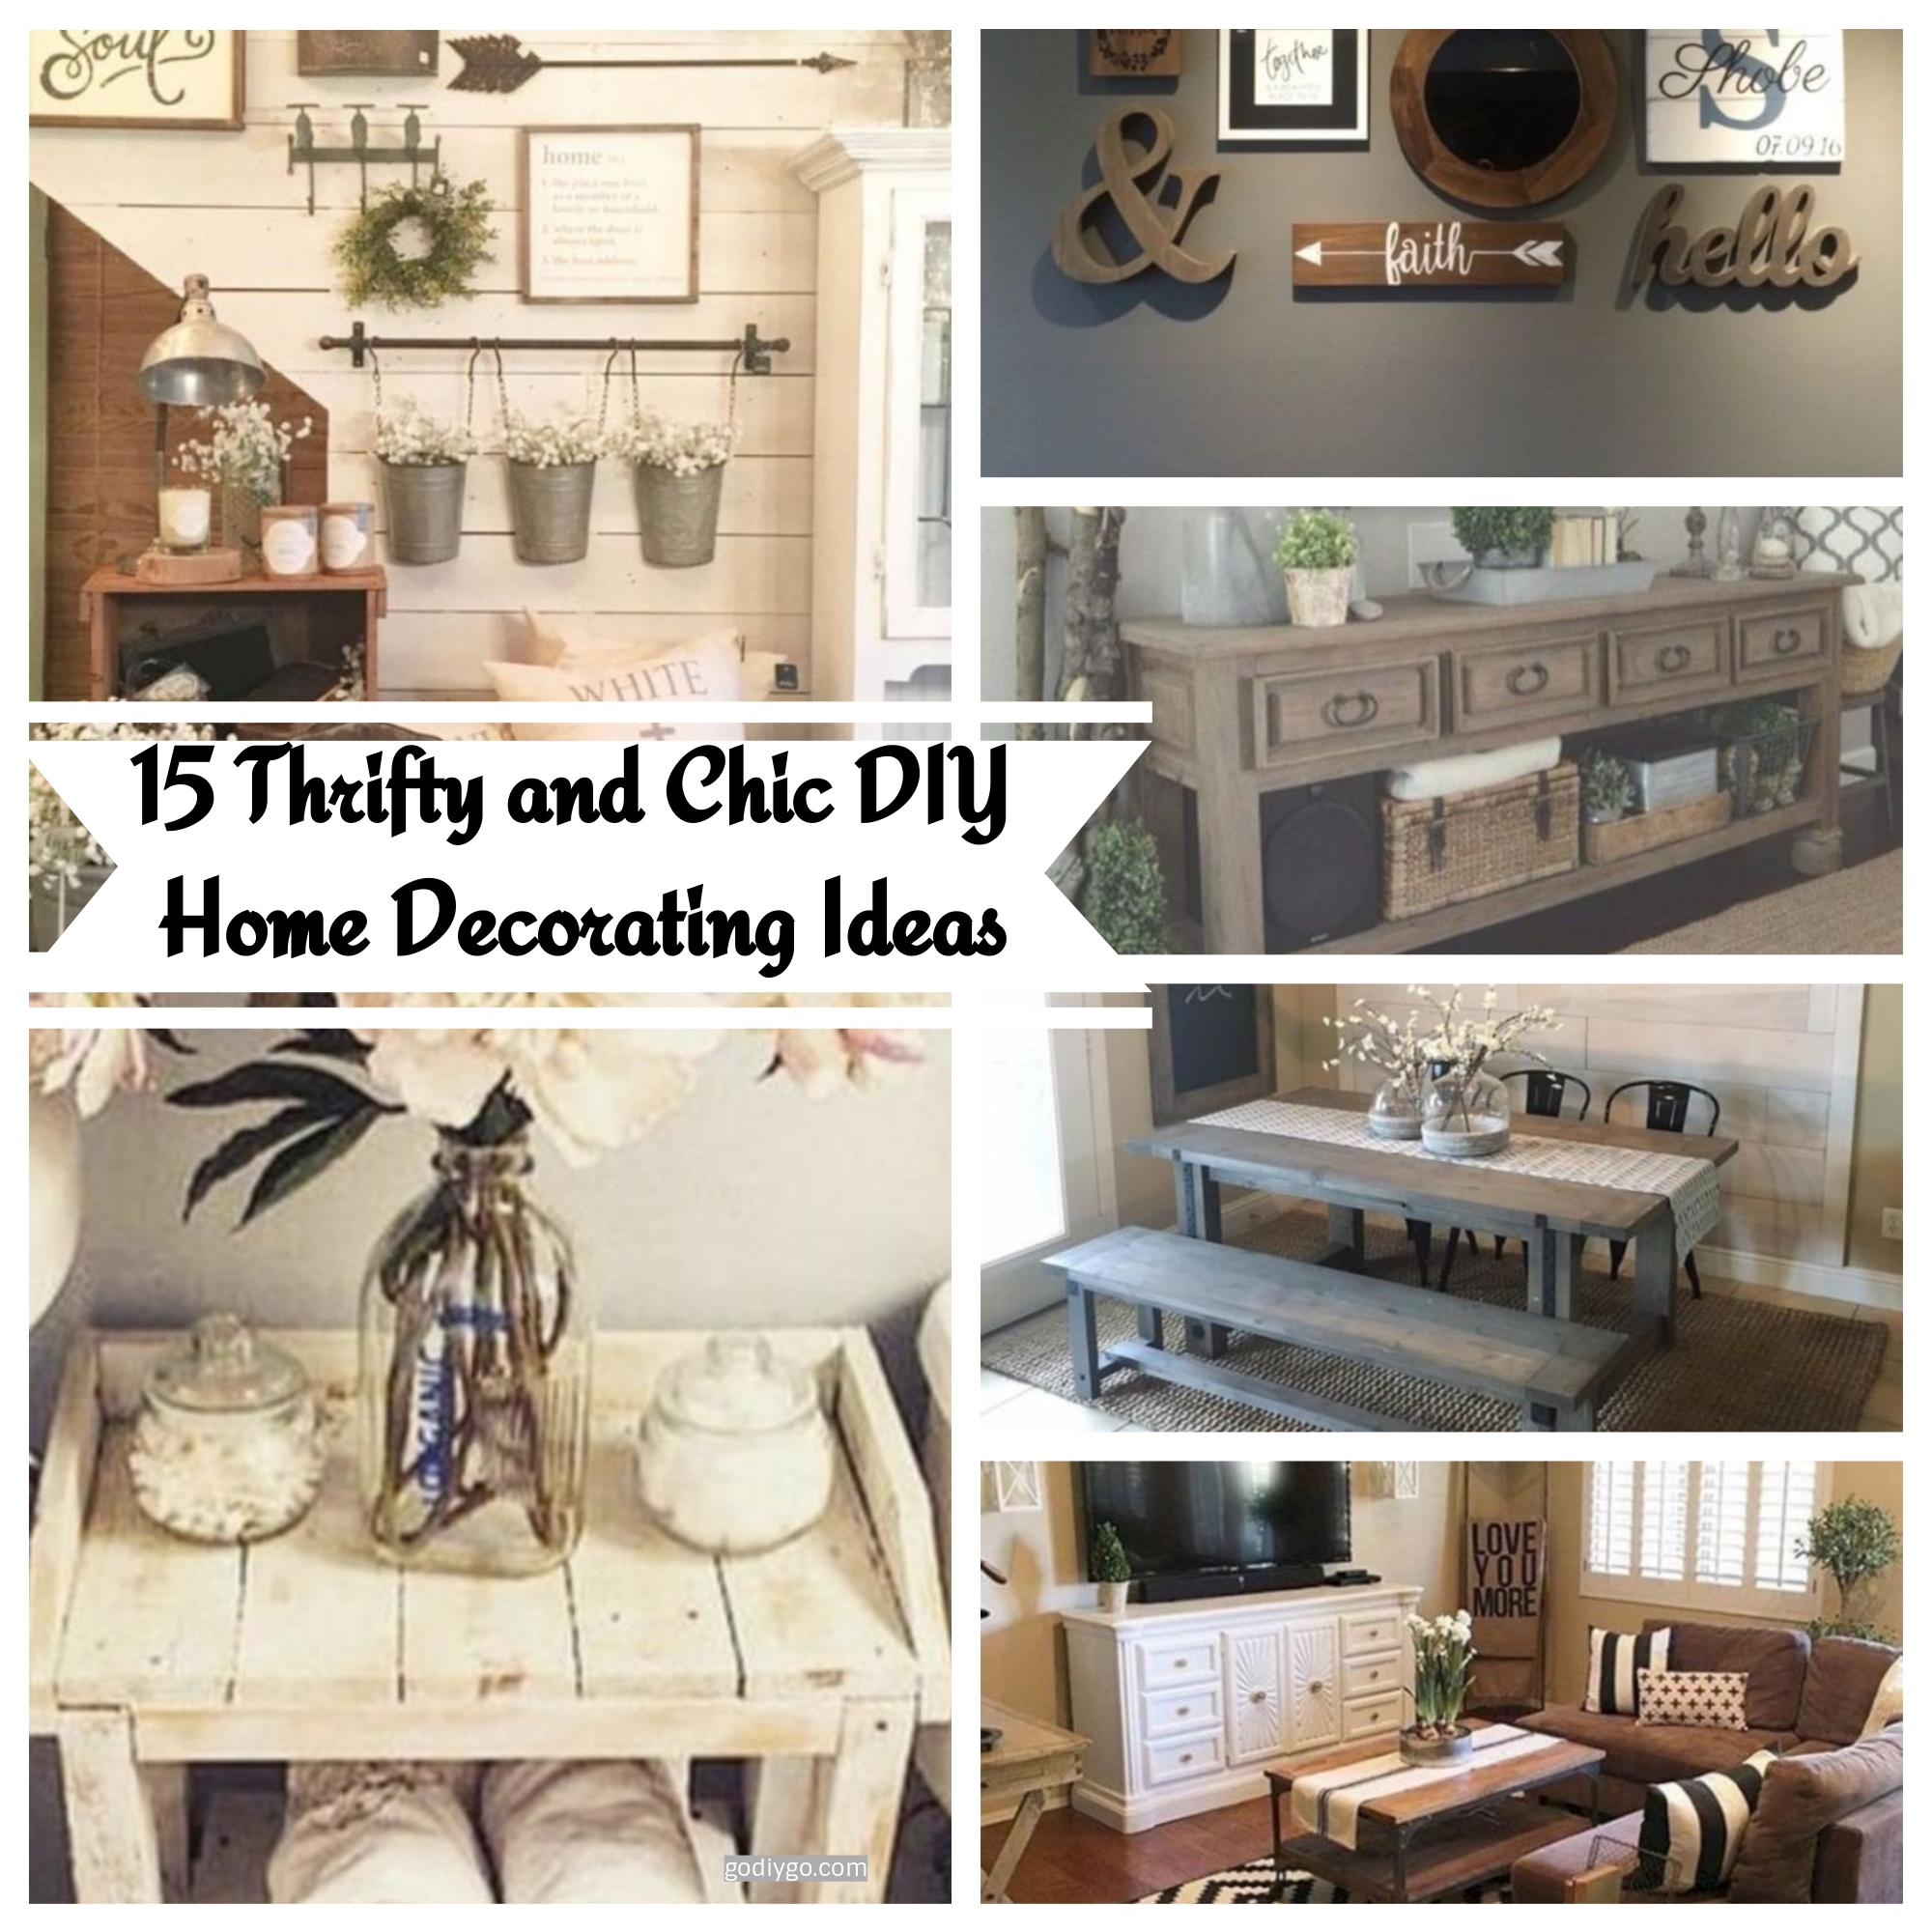 Home Design Ideas Diy: 15 Thrifty And Chic DIY Home Decorating Ideas